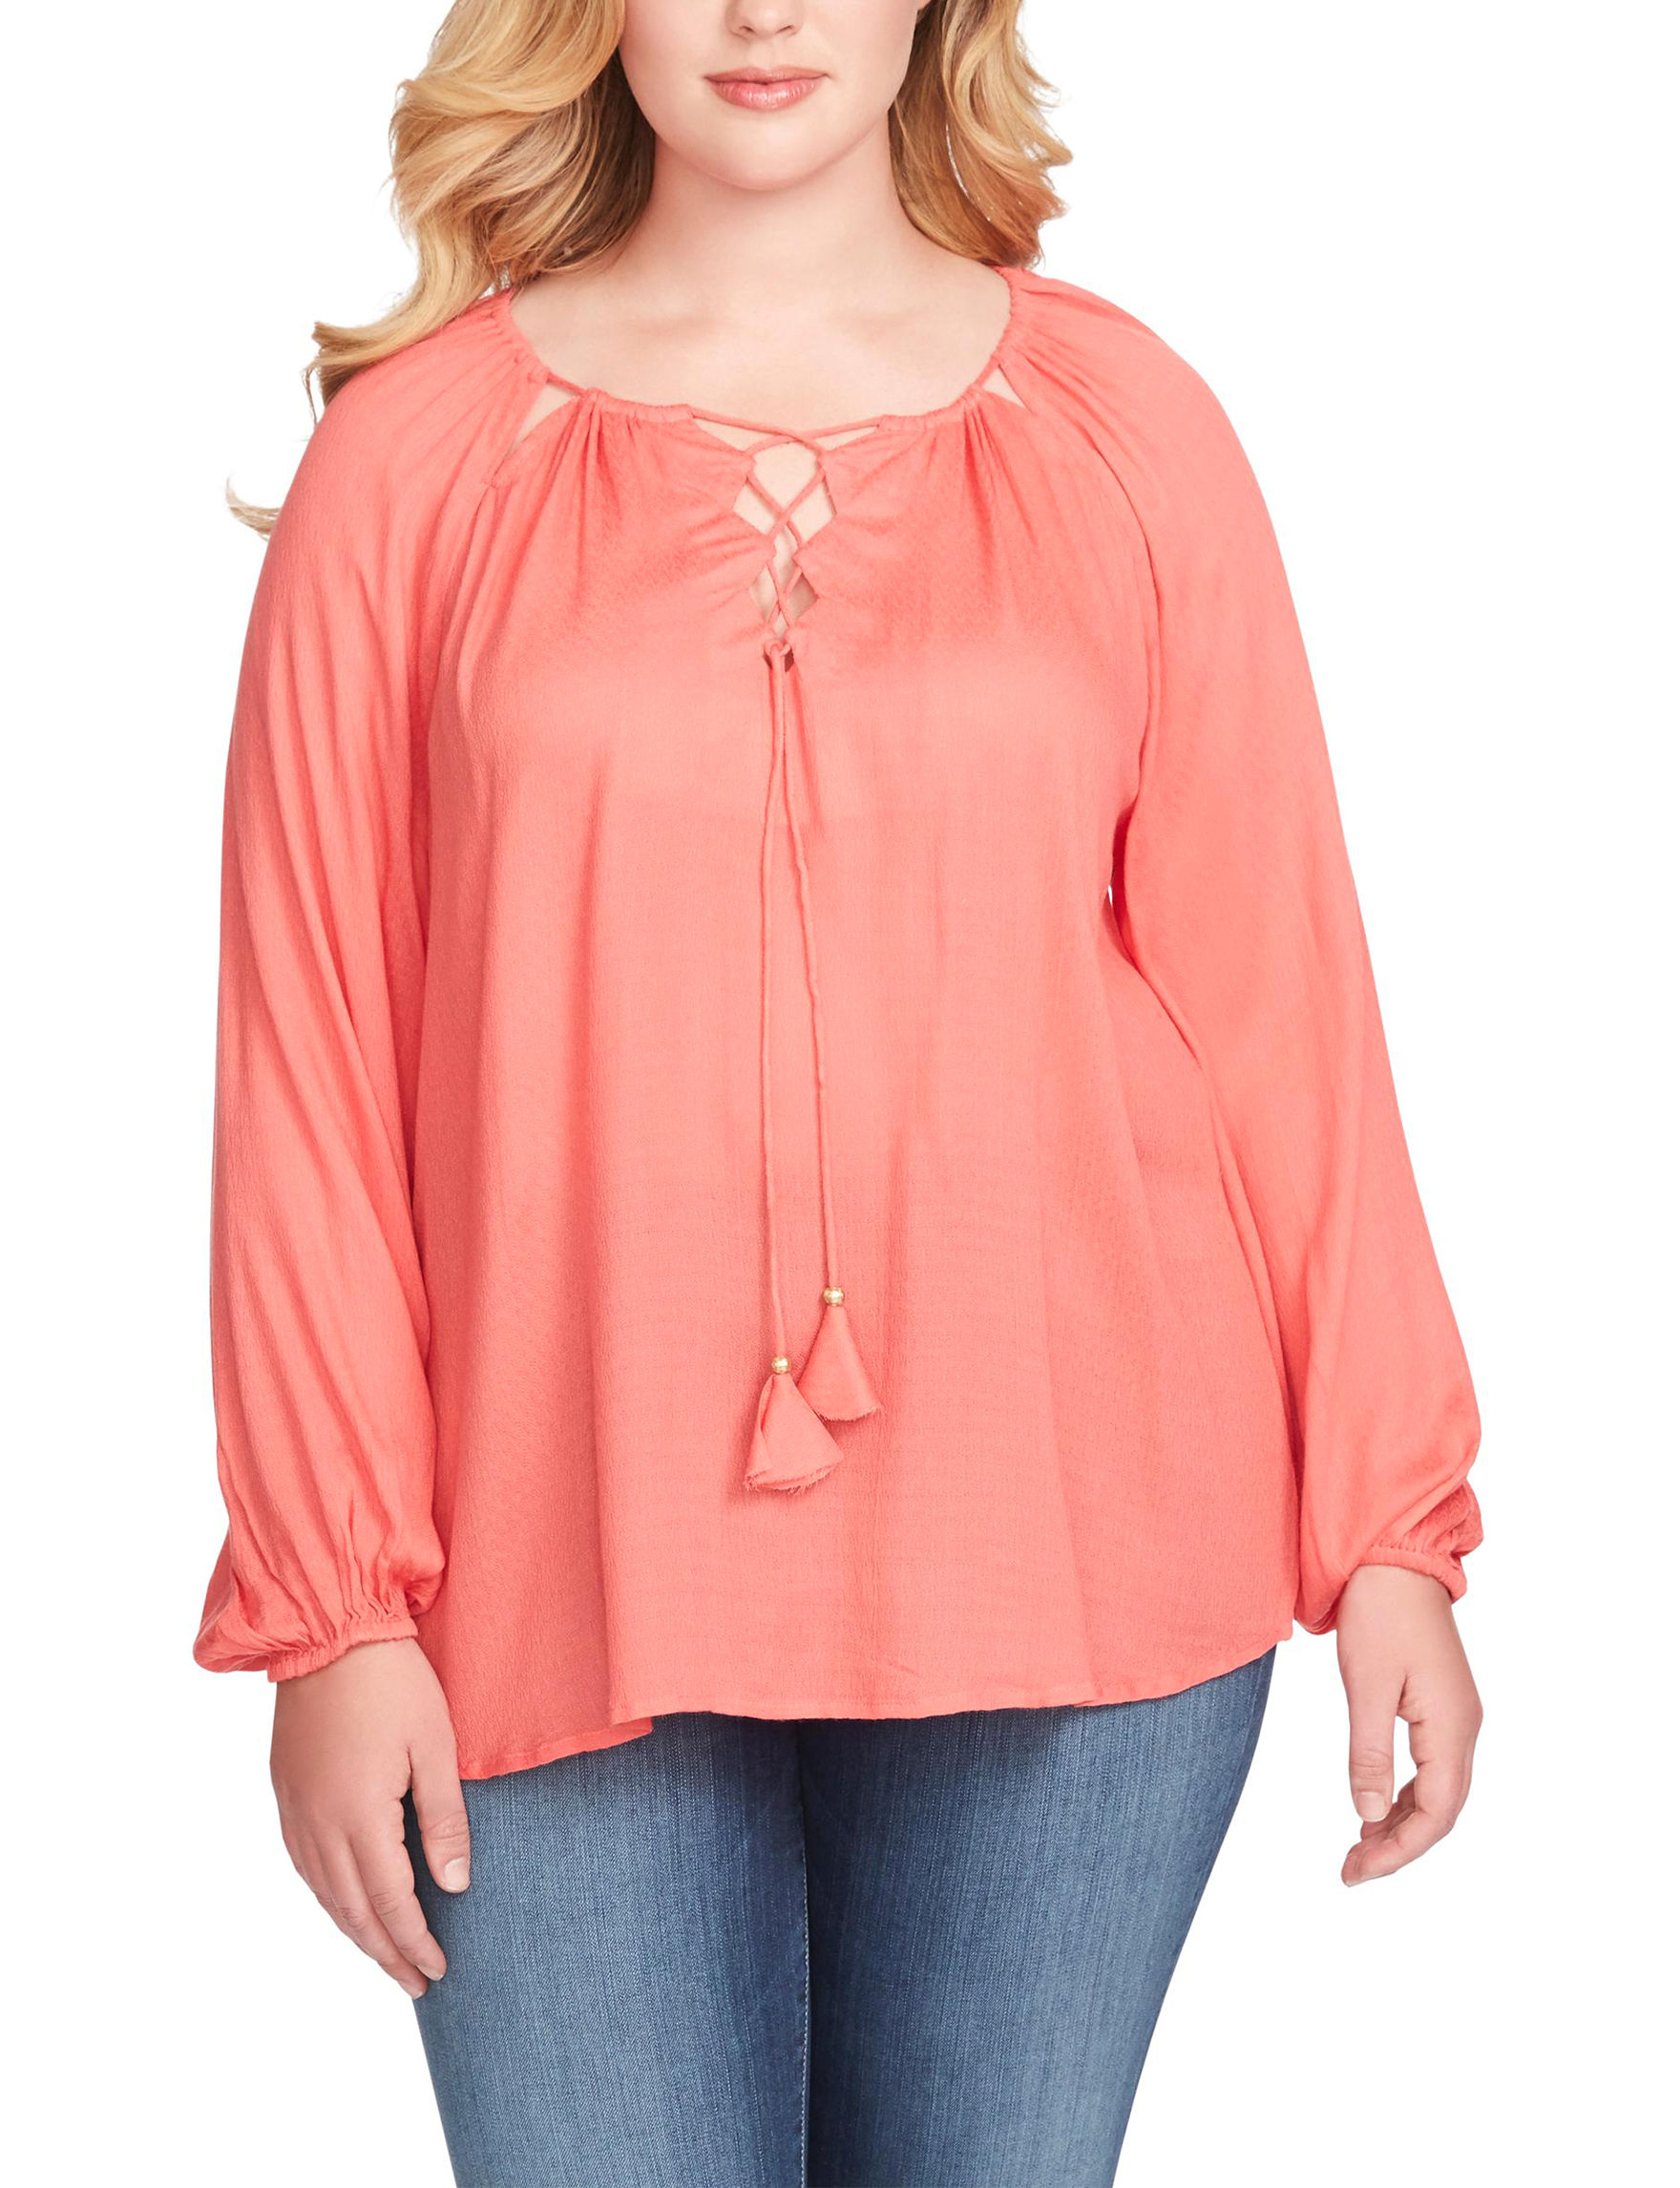 Jessica Simpson Coral Shirts & Blouses